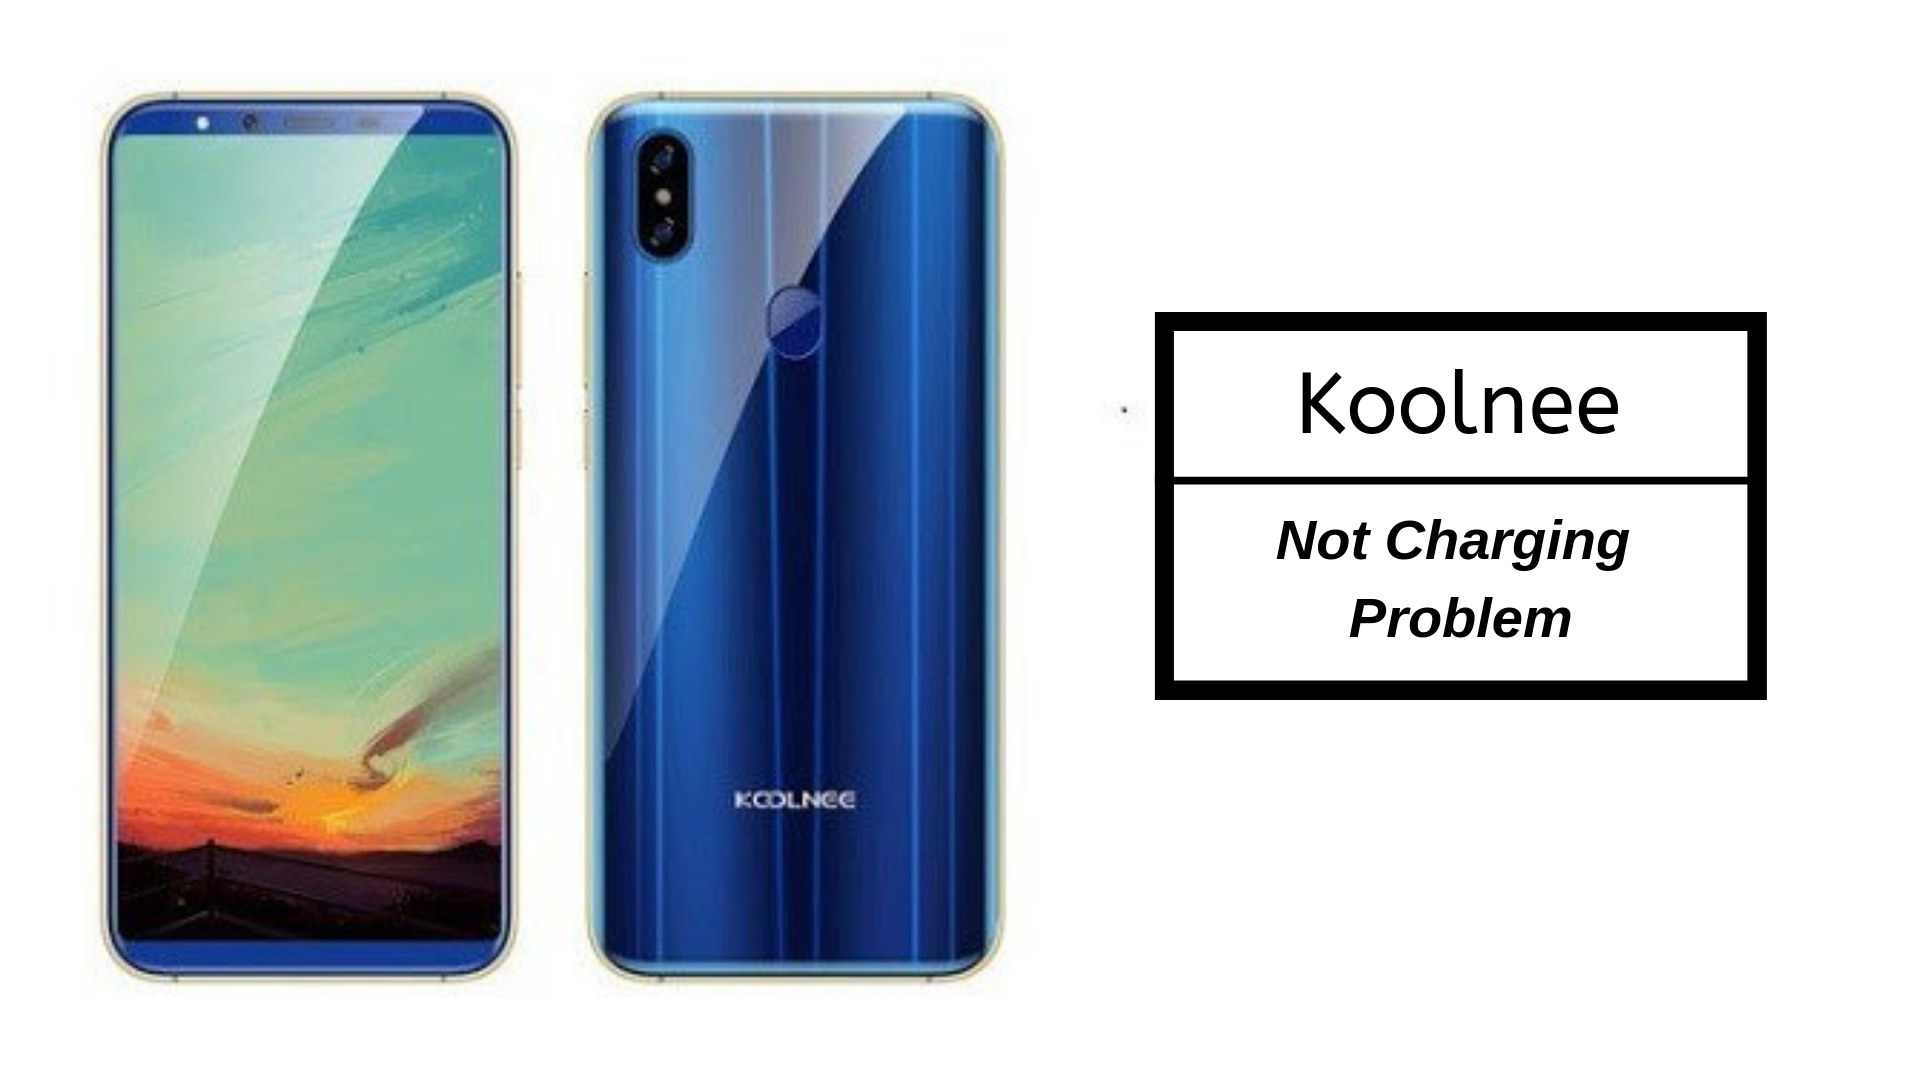 How To Fix Koolnee Not Charging Problem [Troubleshoot]